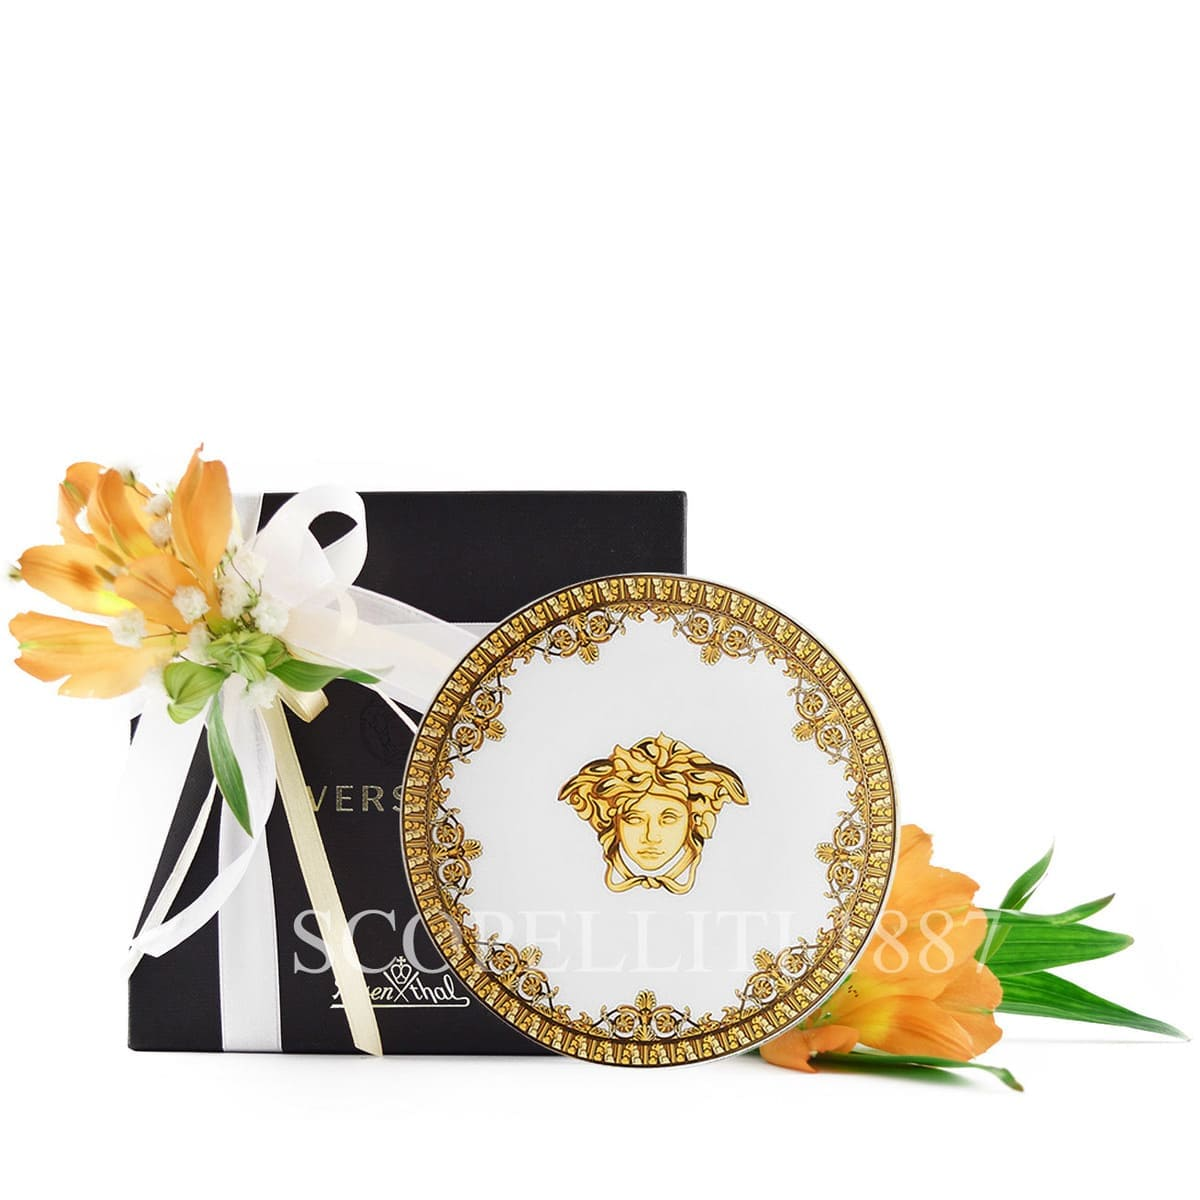 versace i love baroque white and golden small plate fine italian design